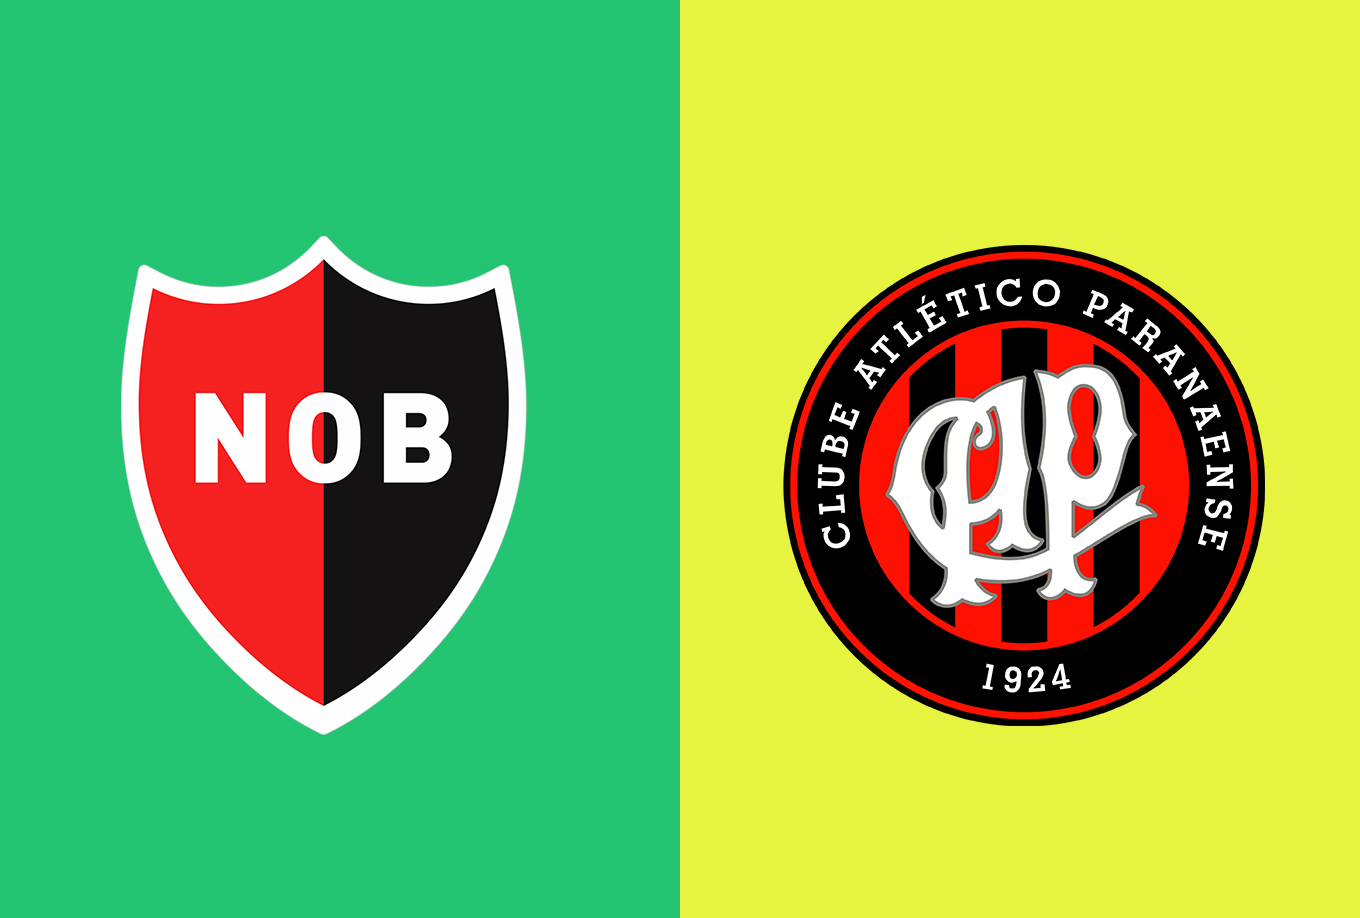 newells-old-boys-vs-atl-paranaense-tip-bong-da-11-5-2018 1